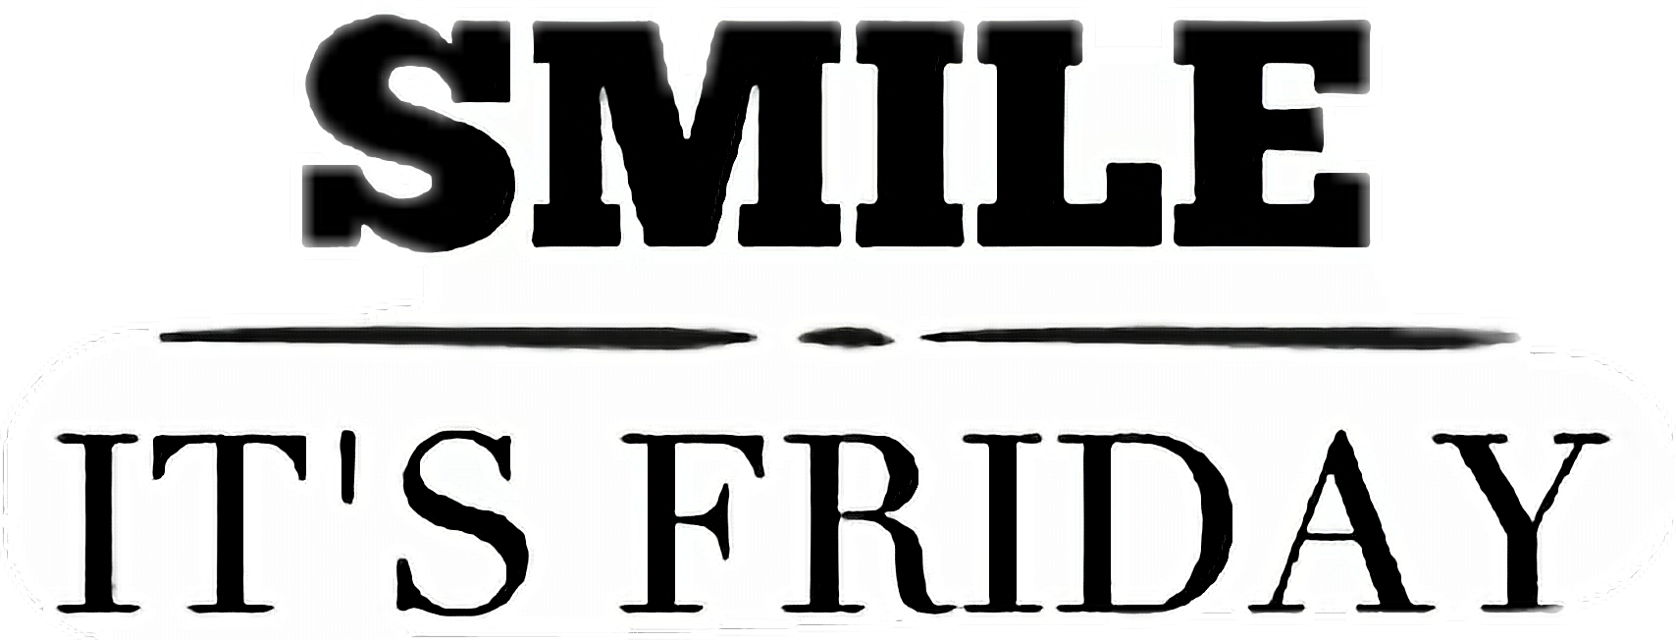 #smile #friday #weekend #summer #ftestickers #ftstickers #stickers #autocollants #smile #pegatinas